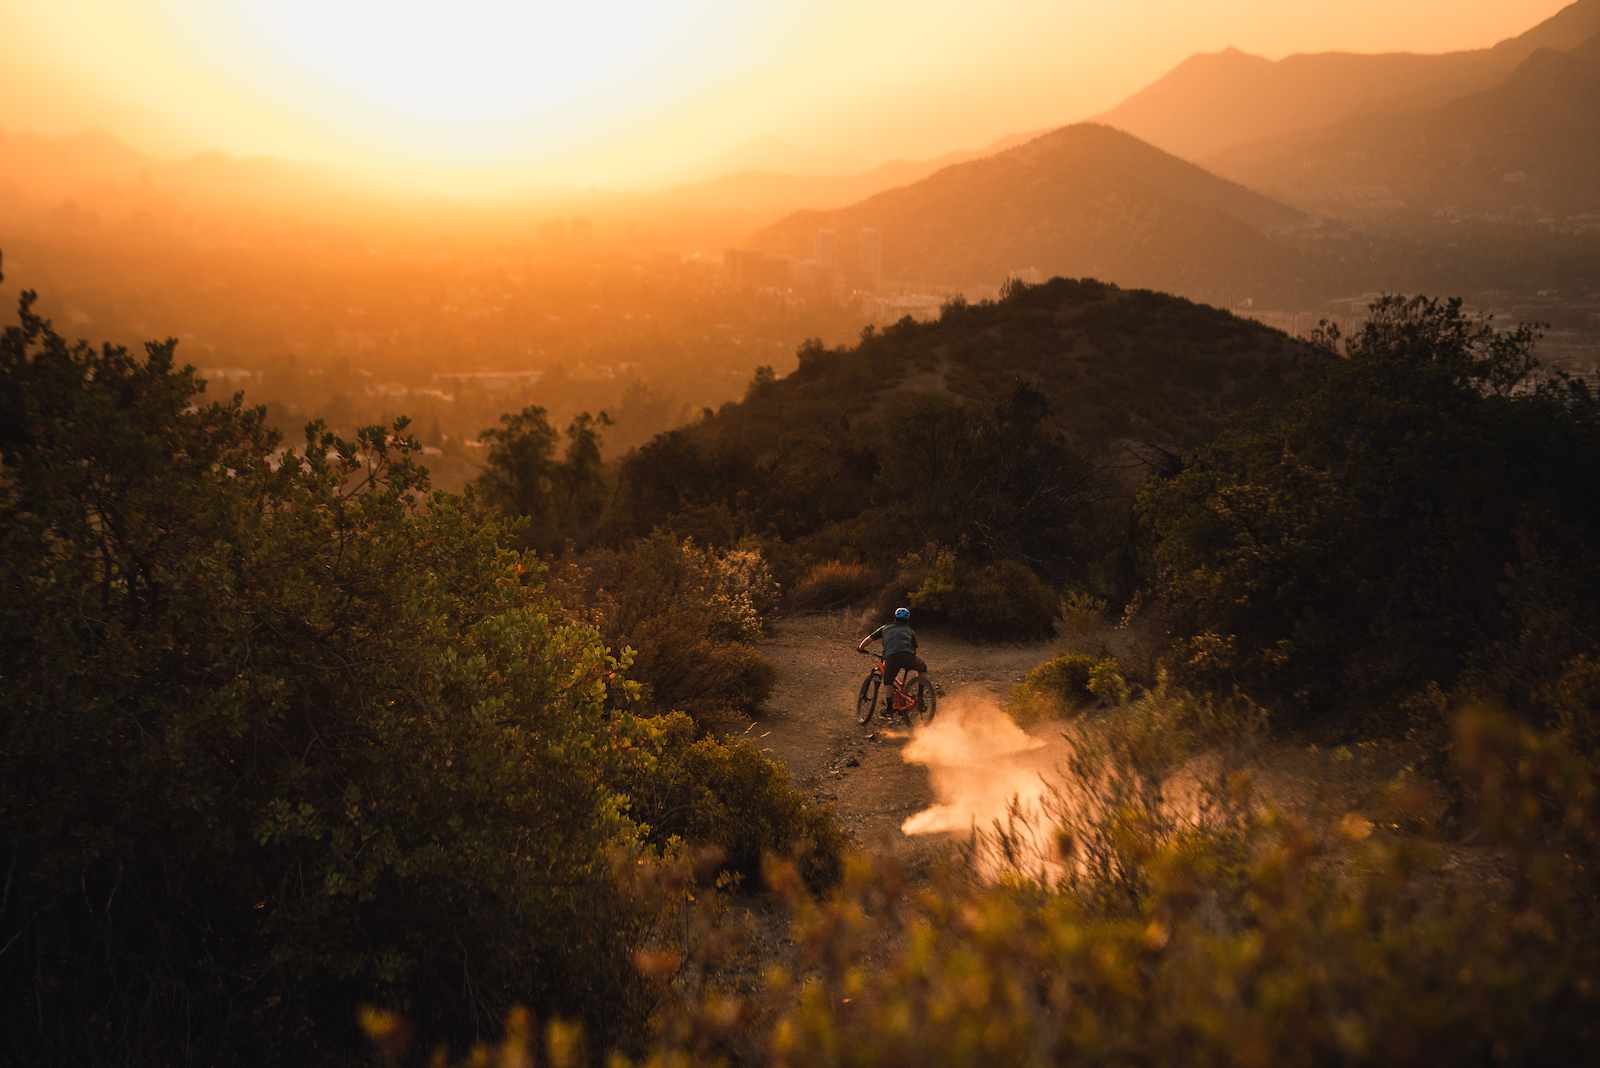 Hacienda Las Varas just above Santiago is always a popular spot for racers looking to stretch their legs after a ling flight and a long winter in North America.